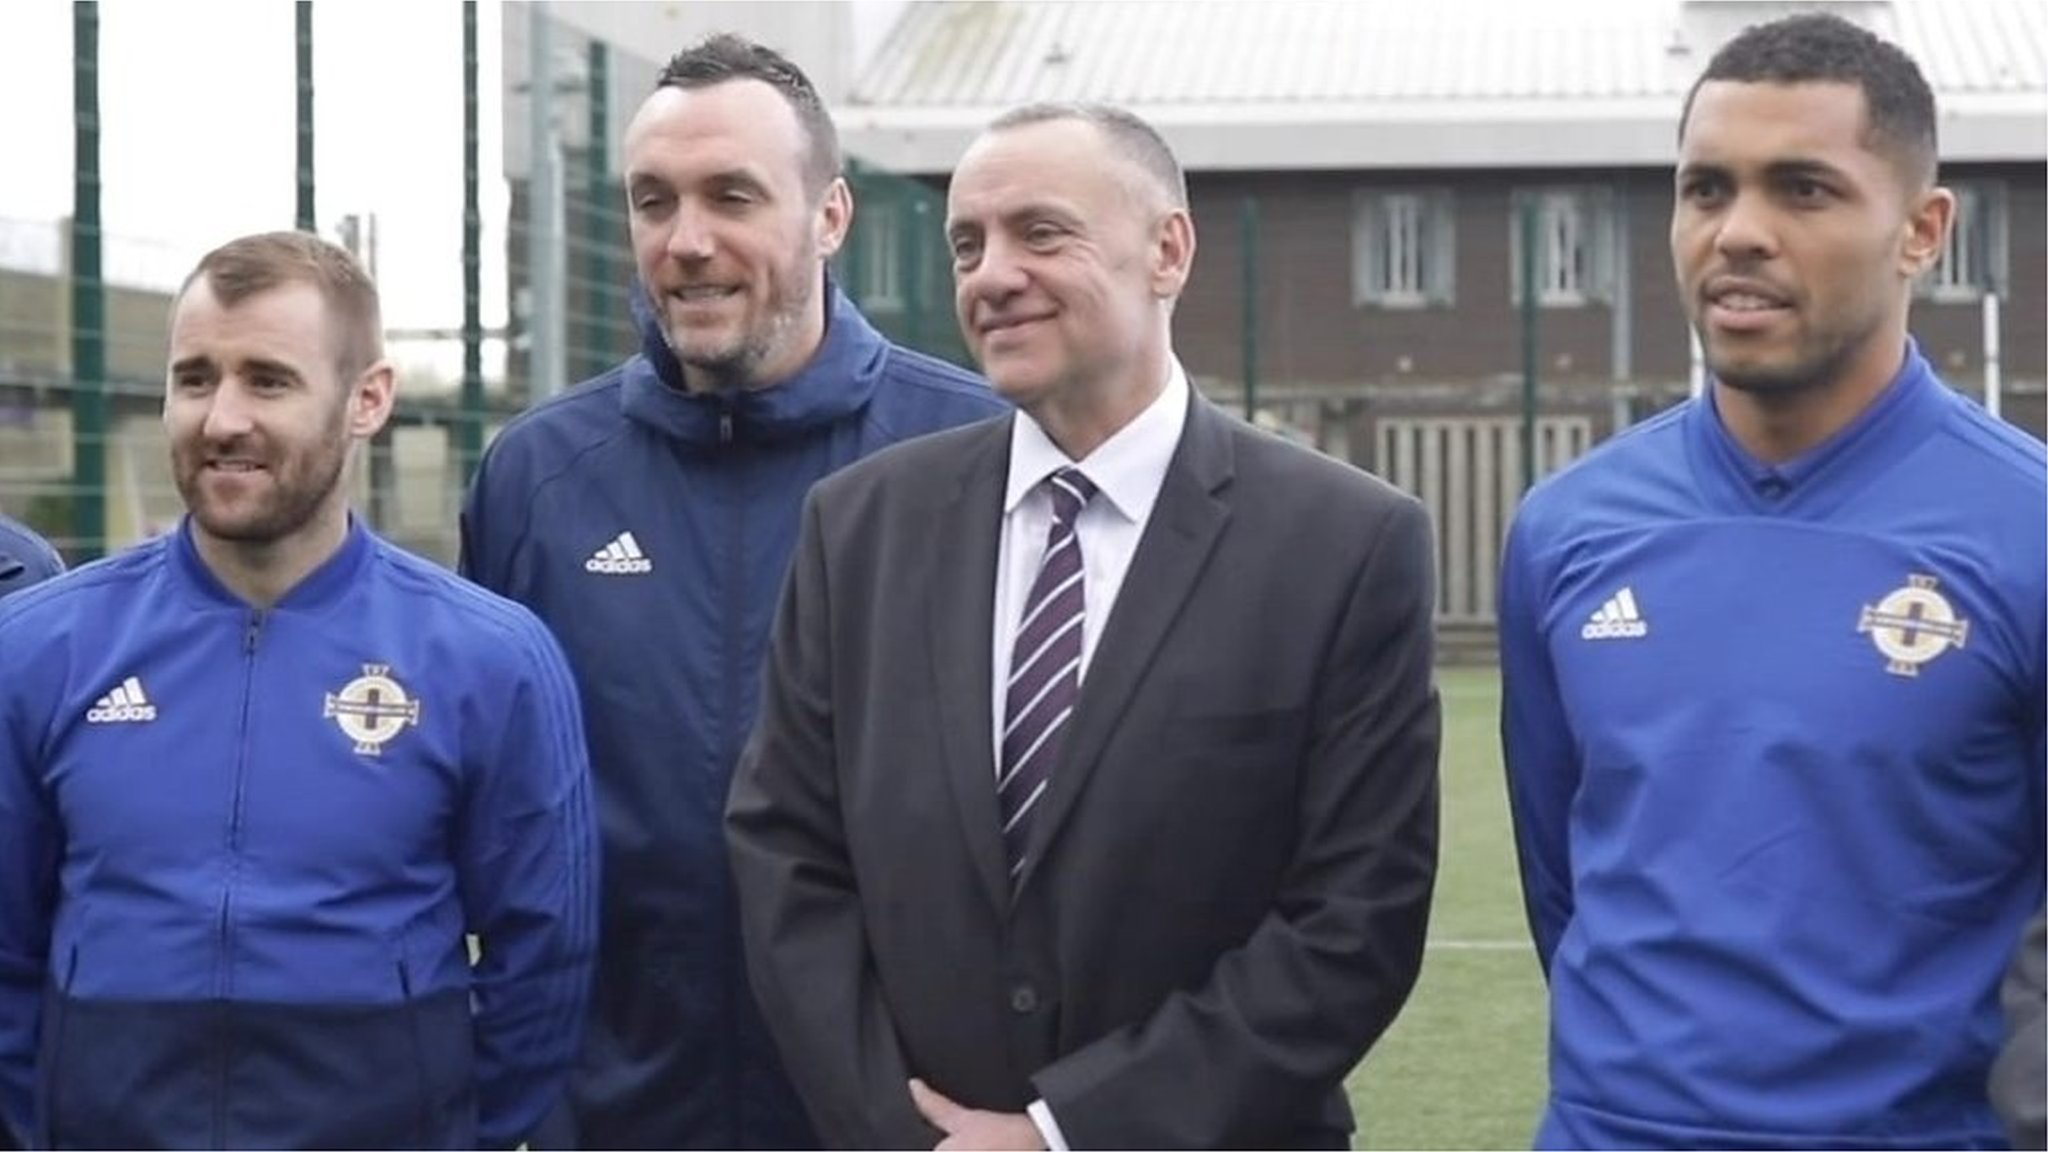 Northern Ireland's Magennis and McGinn back football scheme for prison inmates